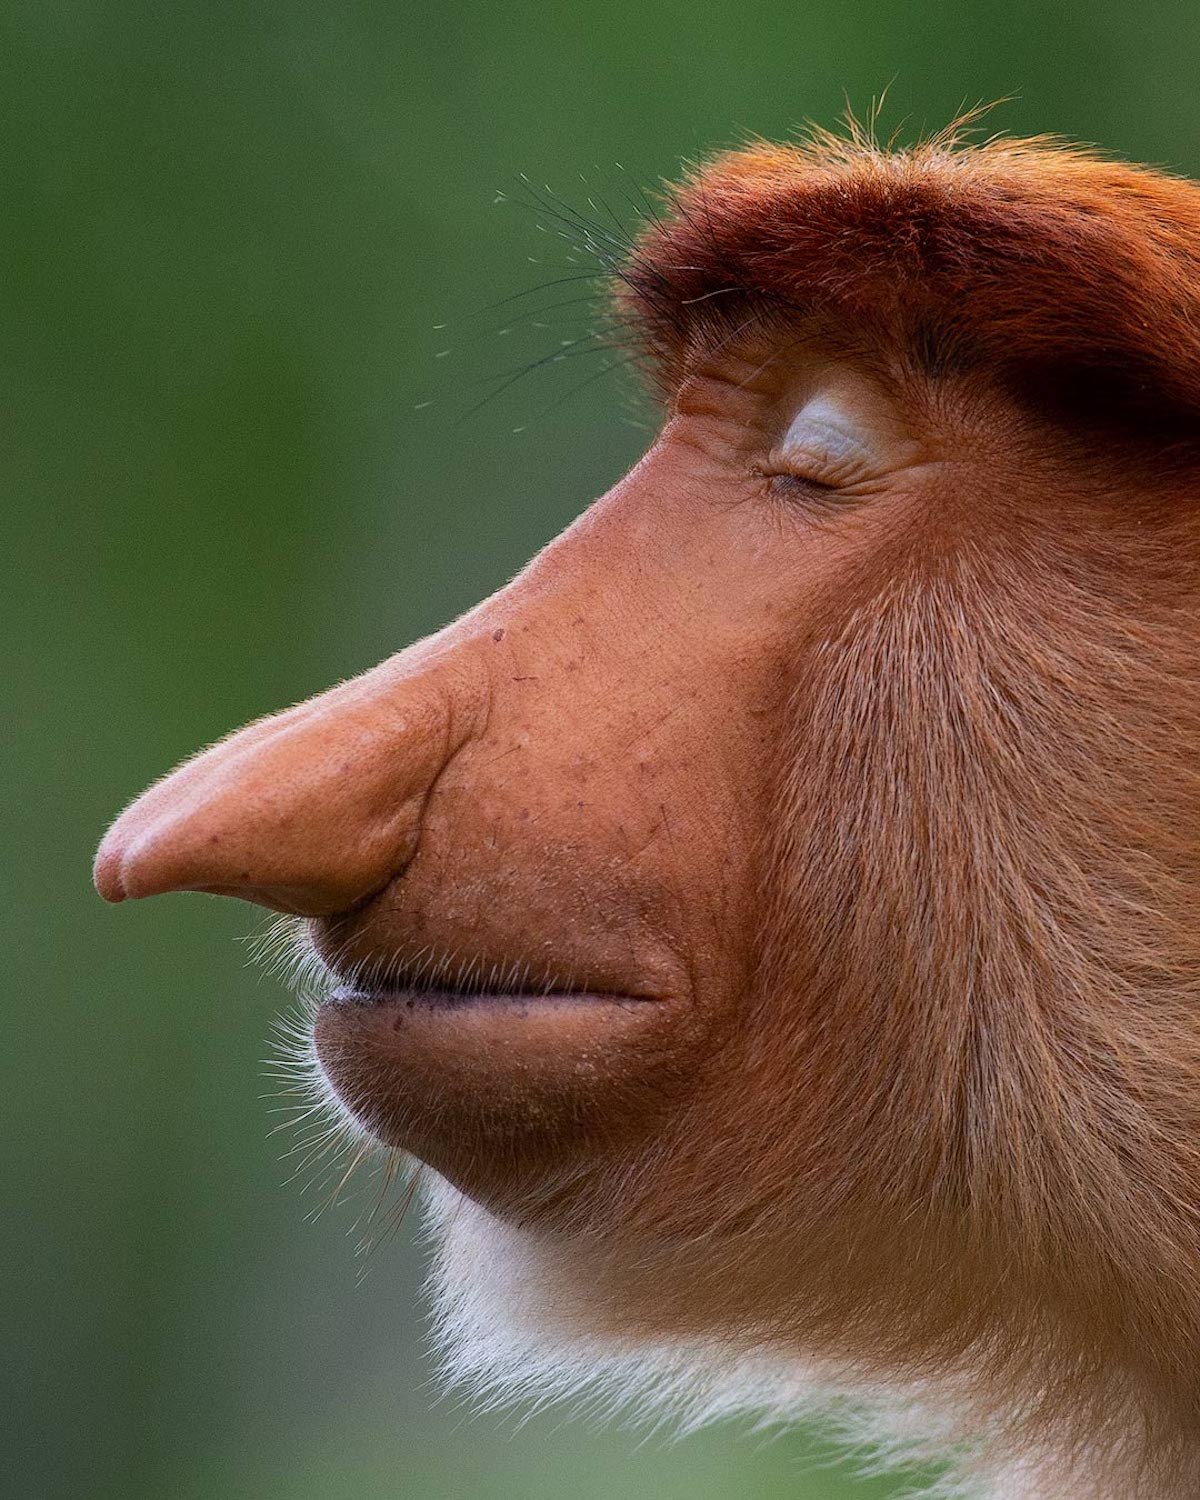 Photos of Monkeys by Mogens Trolle